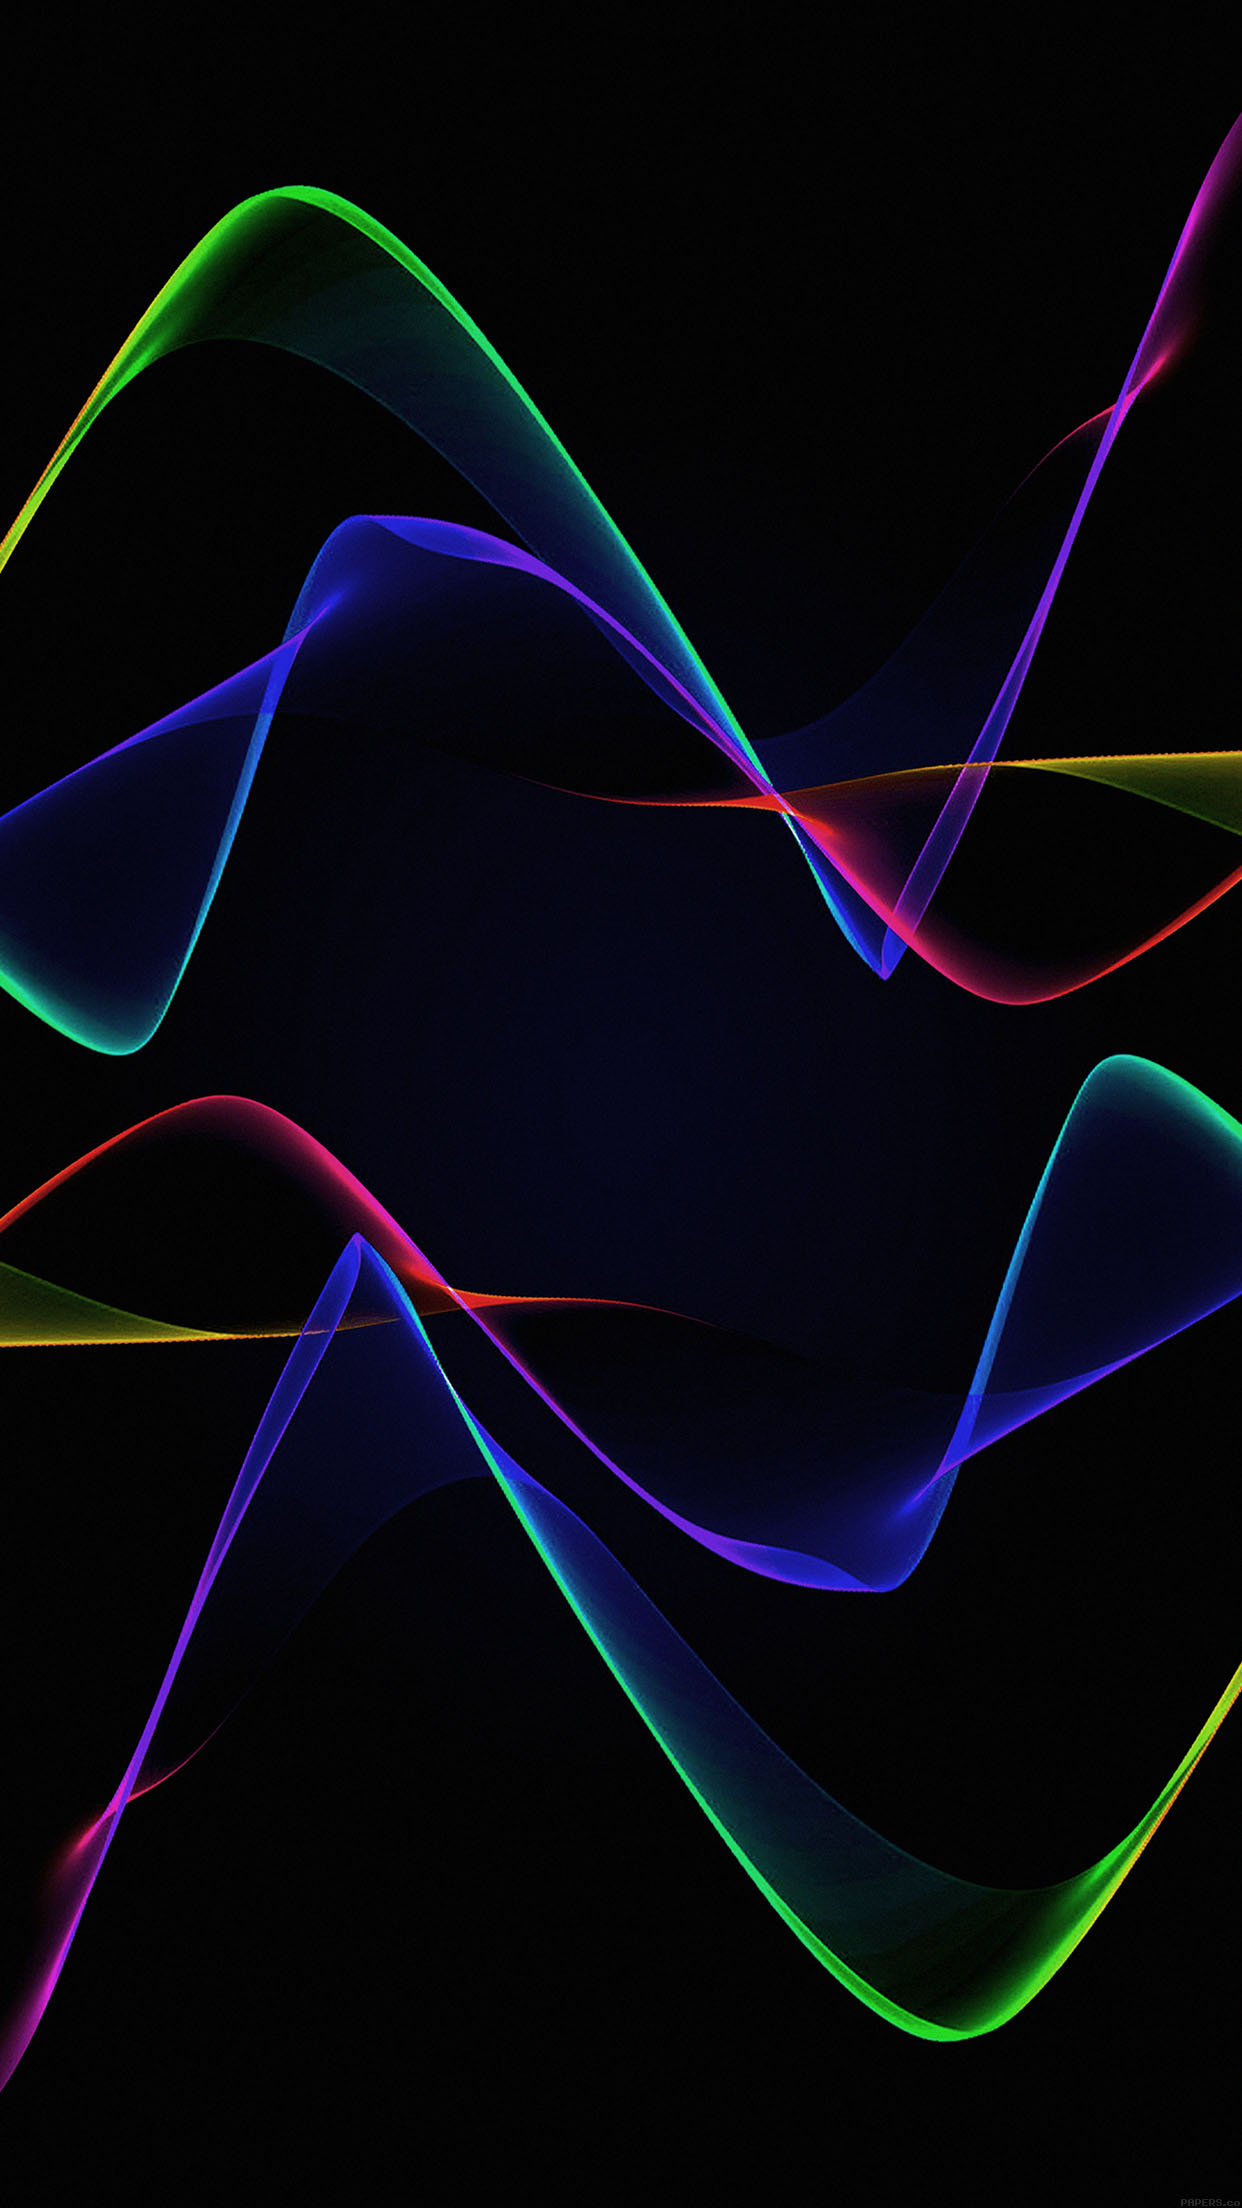 Wallpaper Android Wall Pulse Dark Pattern Android wallpaper